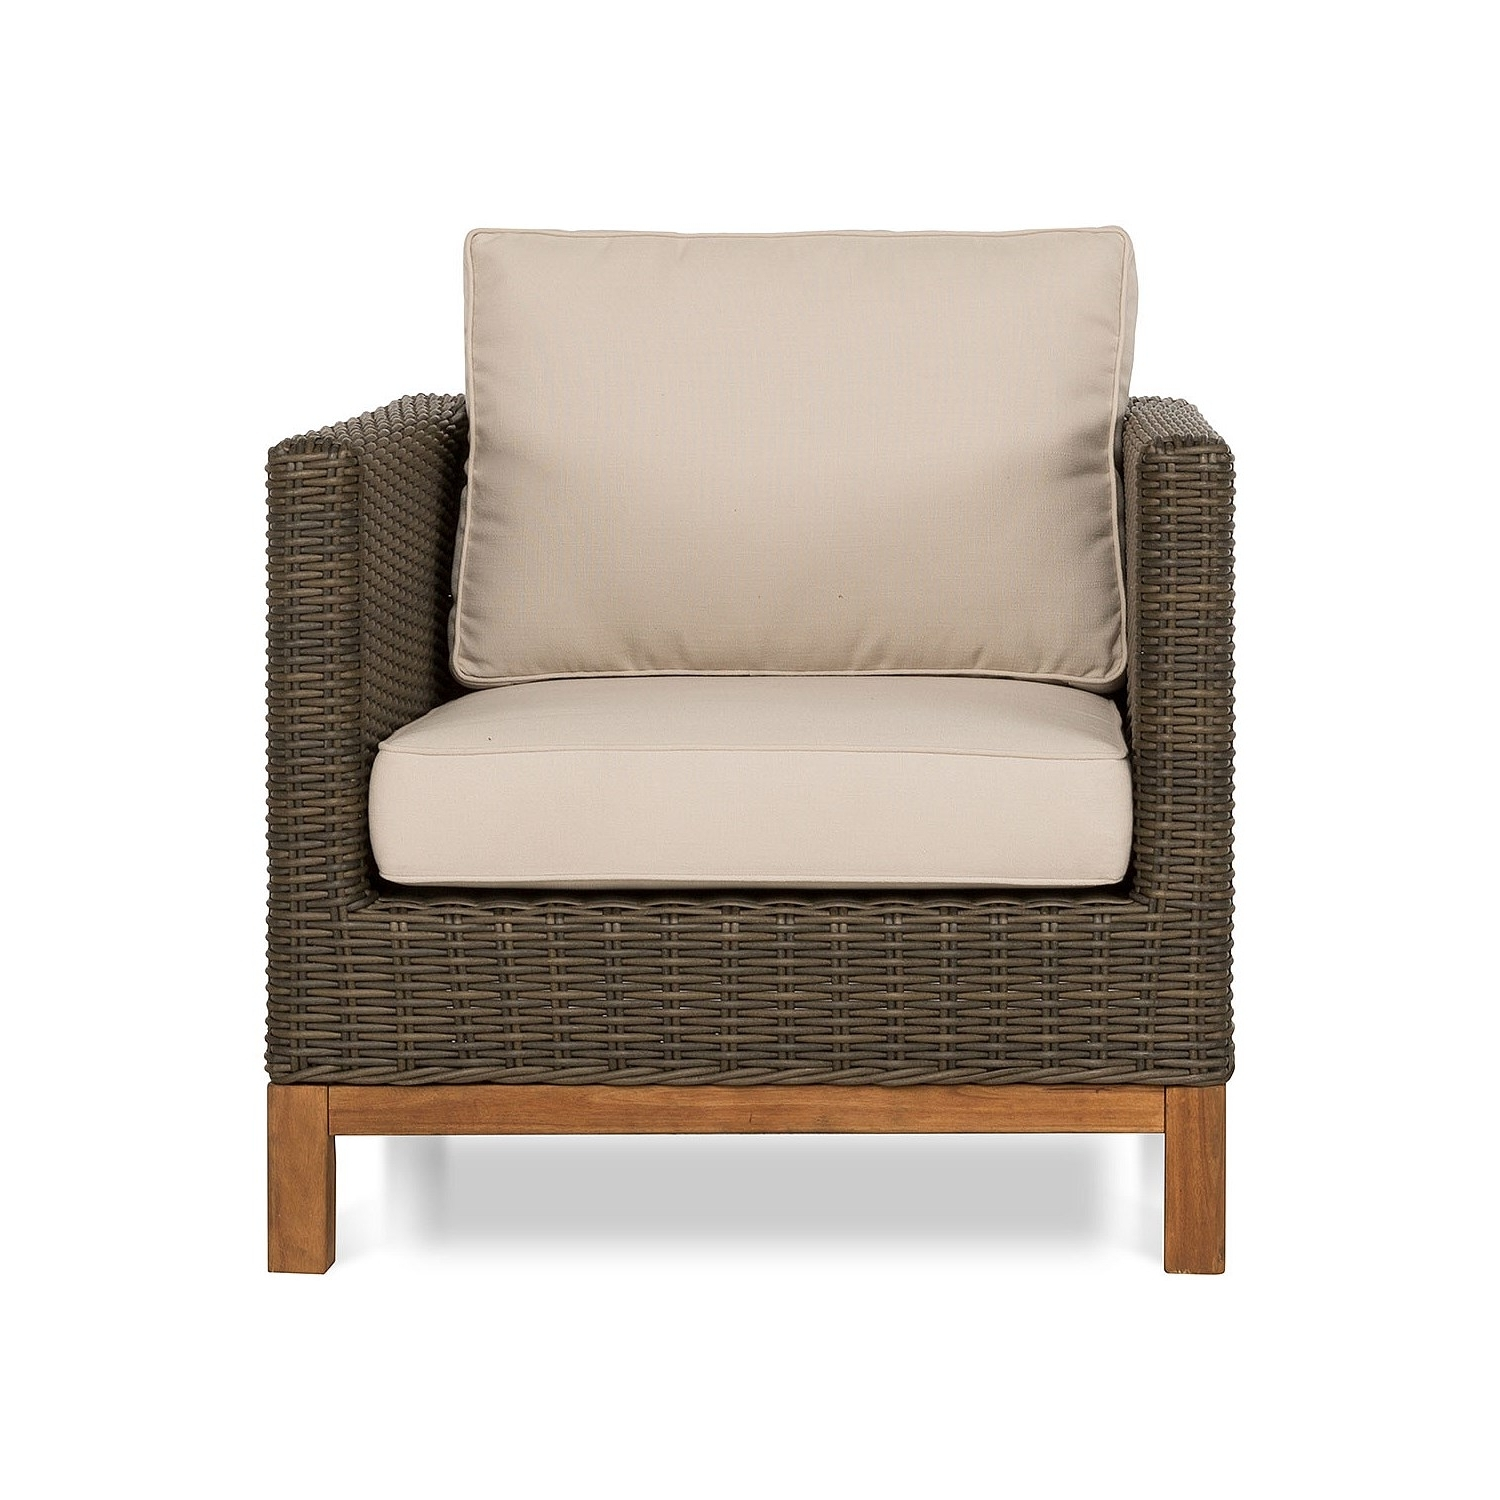 Armchair : Armchair With Ottoman Single Seat Sofa Chair Sofa Chair With Popular Single Seat Sofa Chairs (View 19 of 20)